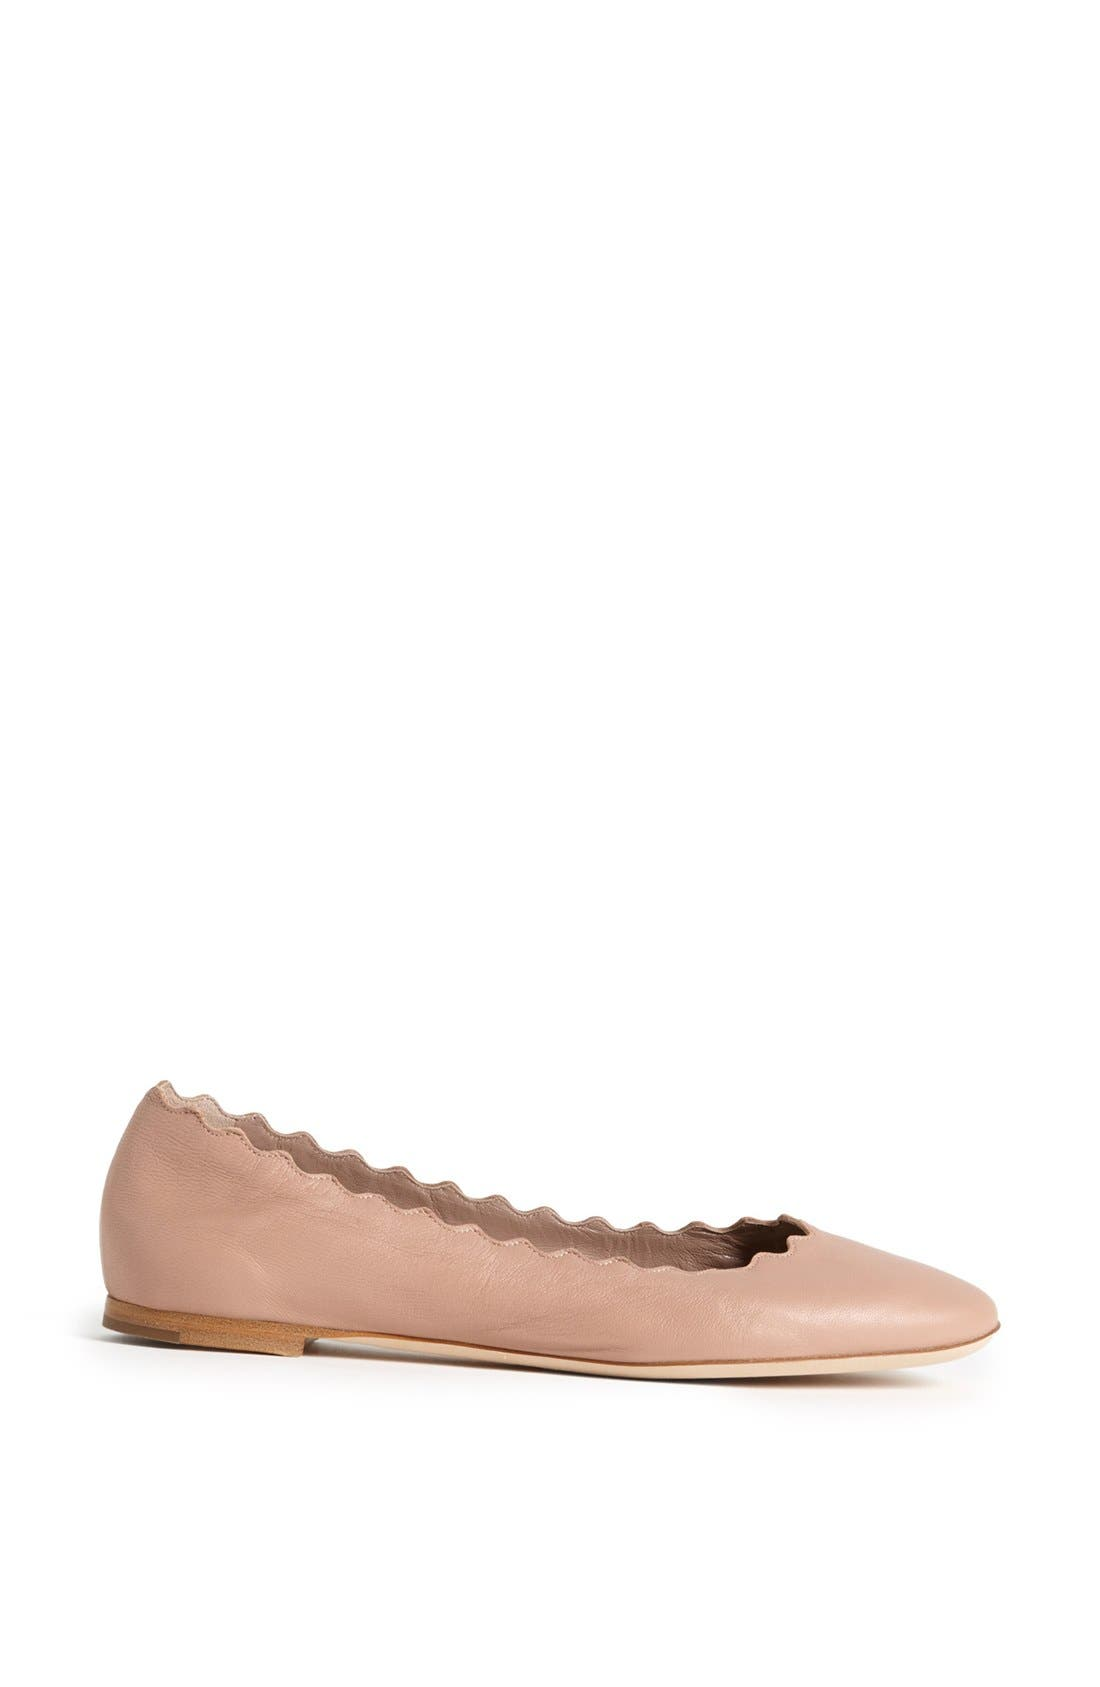 'Lauren' Scalloped Ballet Flat,                             Alternate thumbnail 4, color,                             Taupe